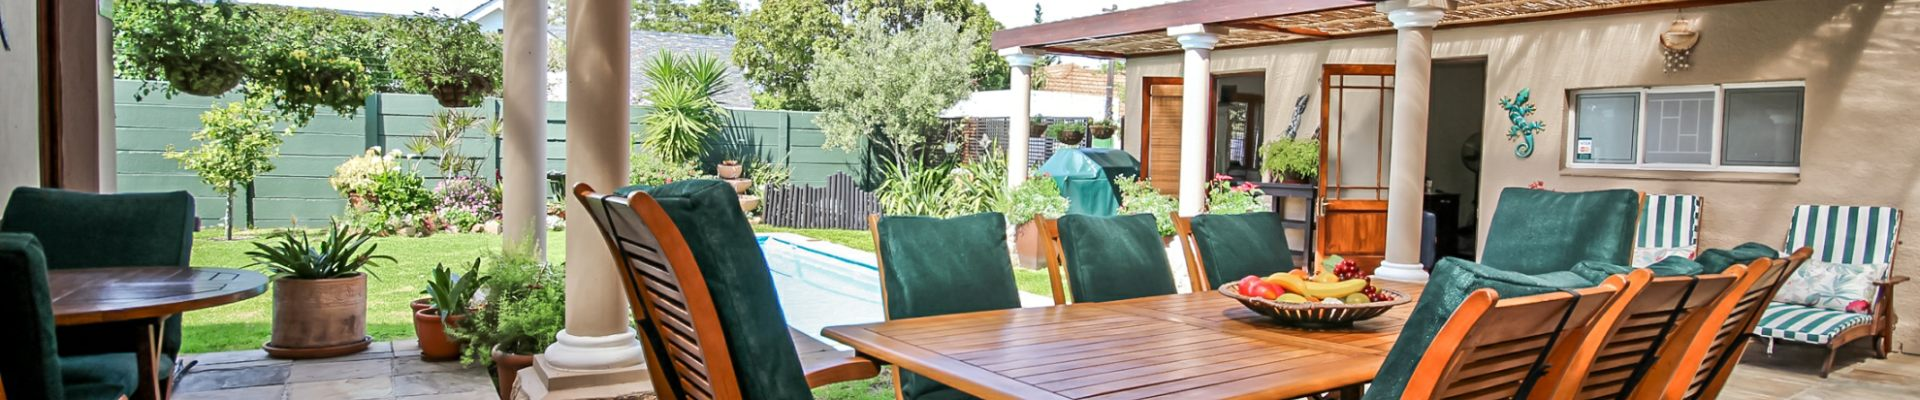 Greenwood Villa - Accommodation Pinelands